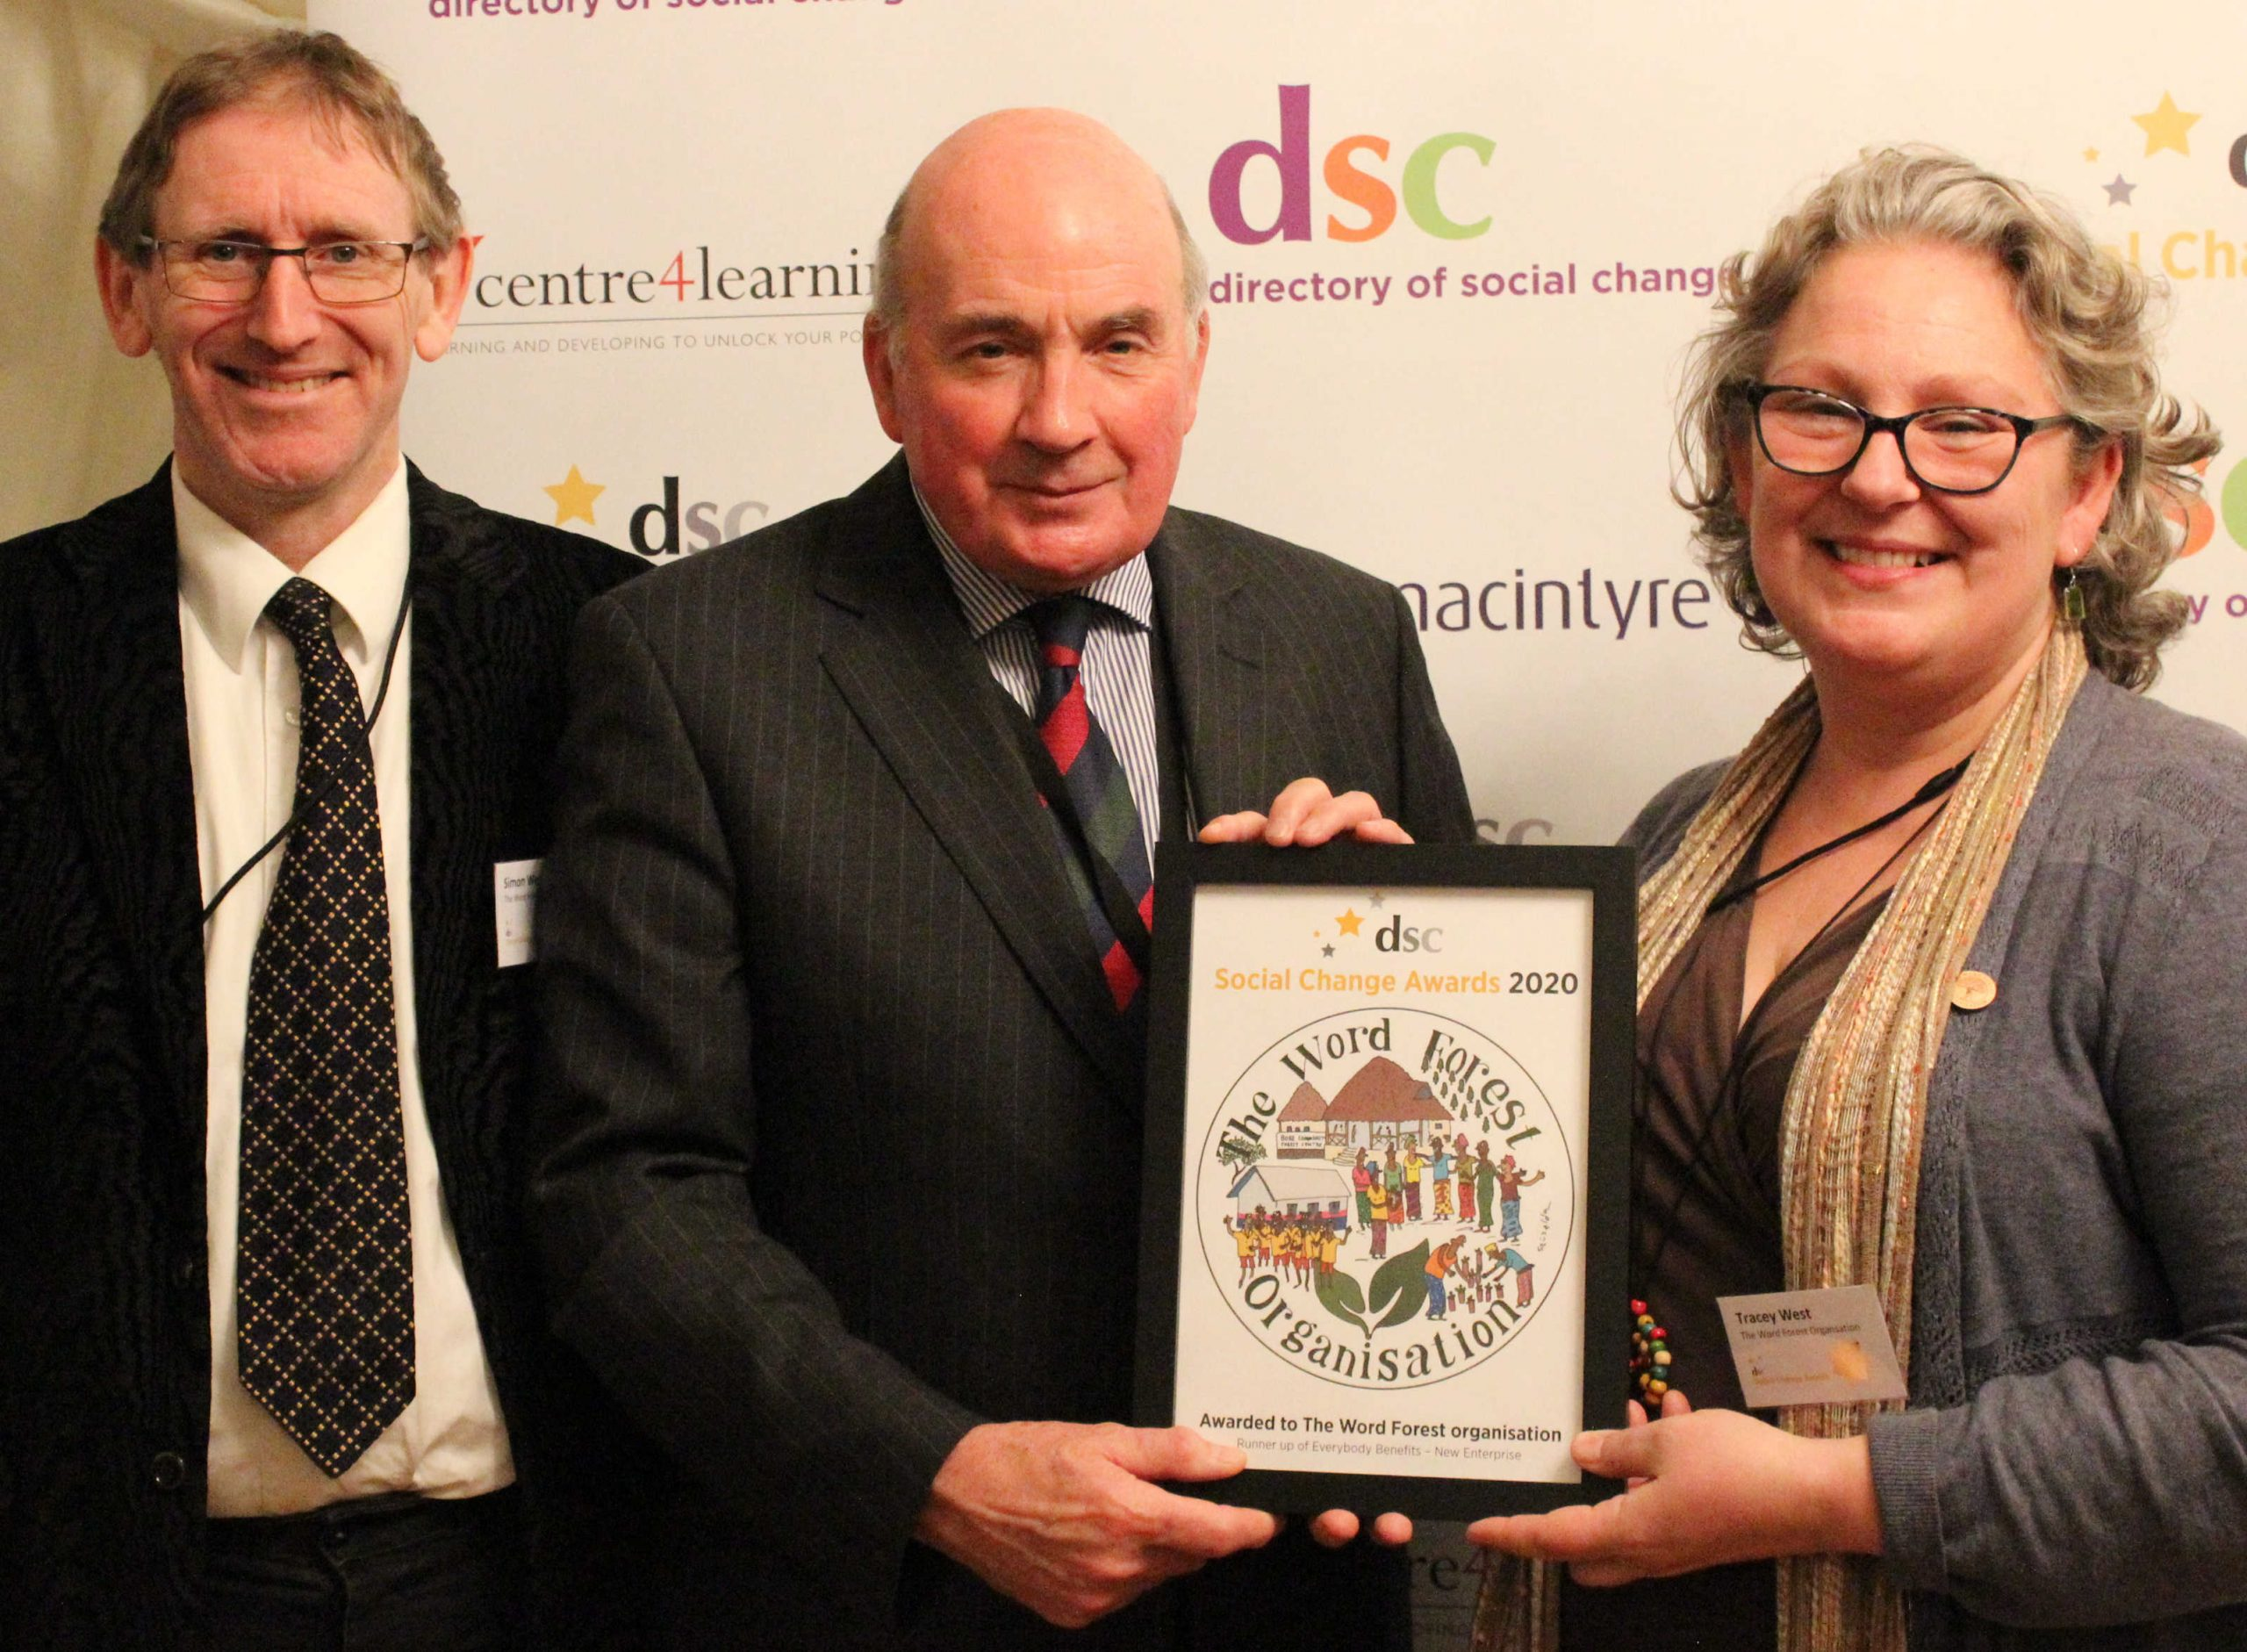 Simon West, Lord Dannatt and Tracey West in the House of Lords